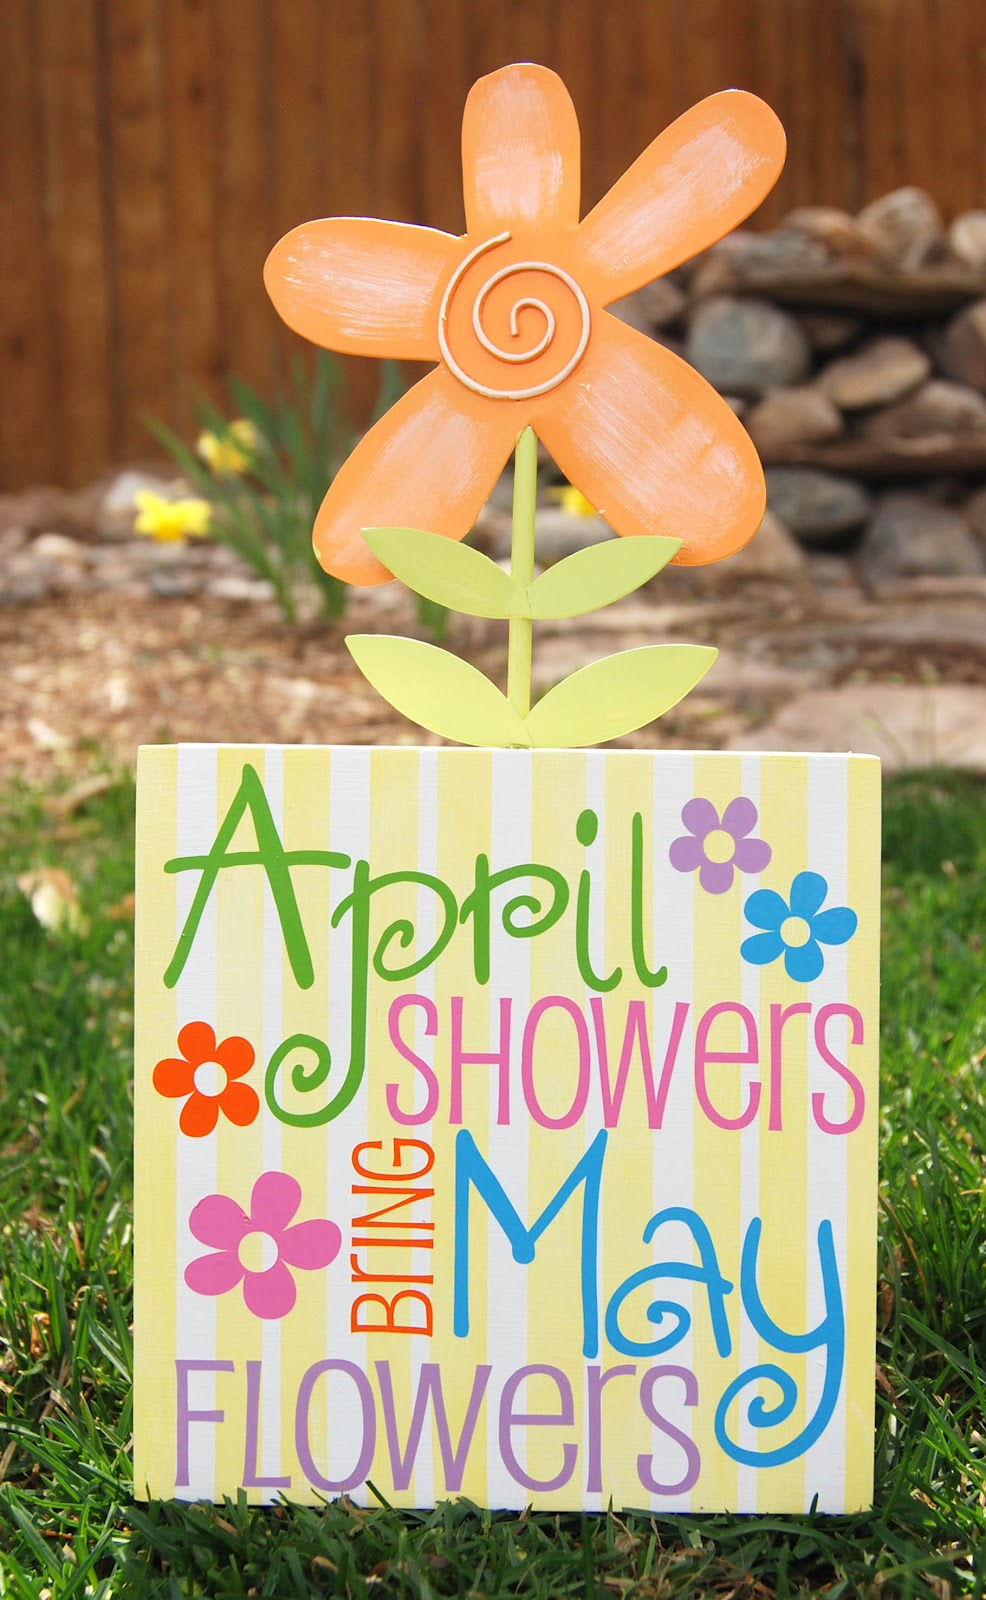 April showers brings May flowers